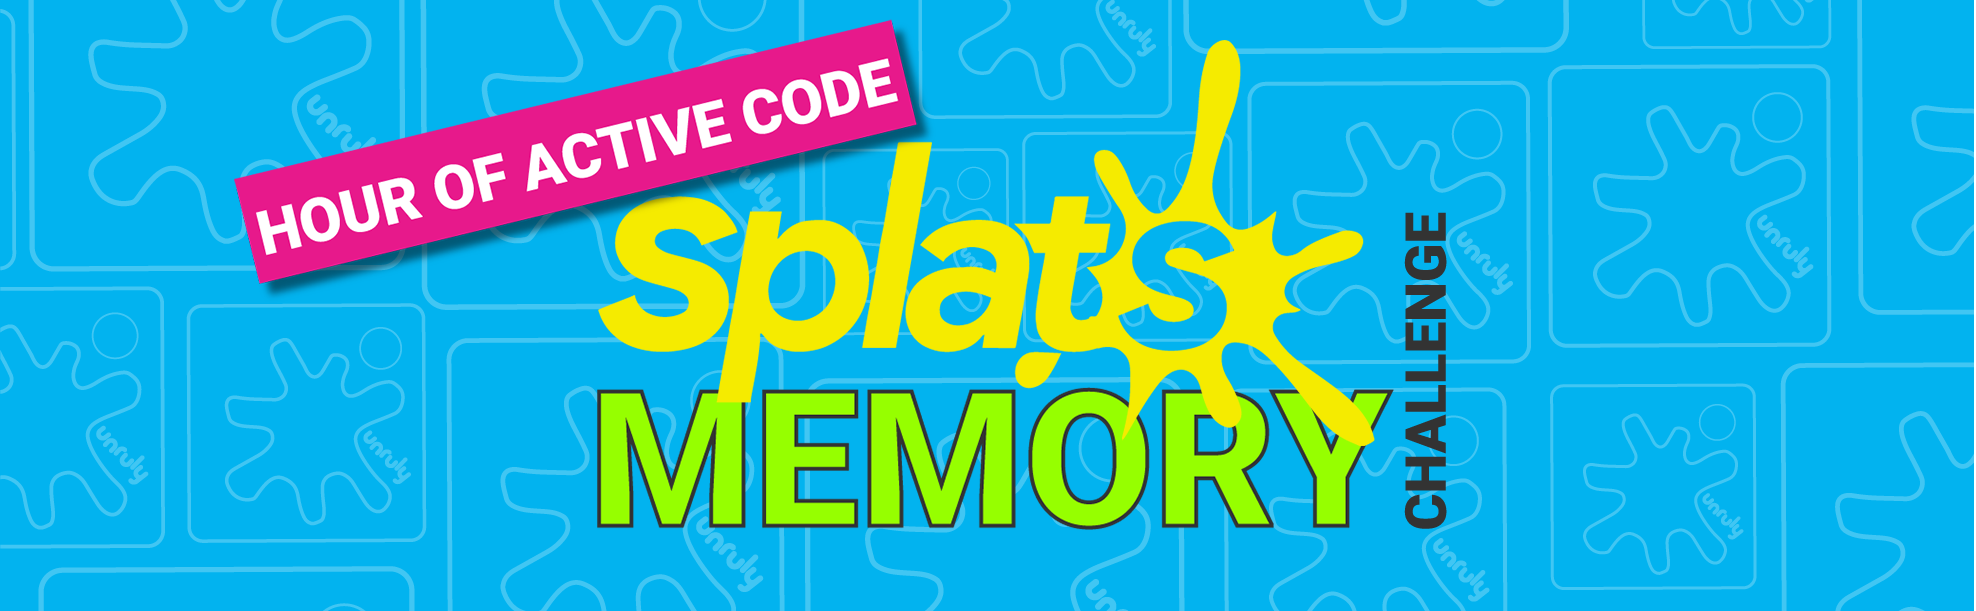 Hour of Active Code Splats Memory Challenge Lesson Plan